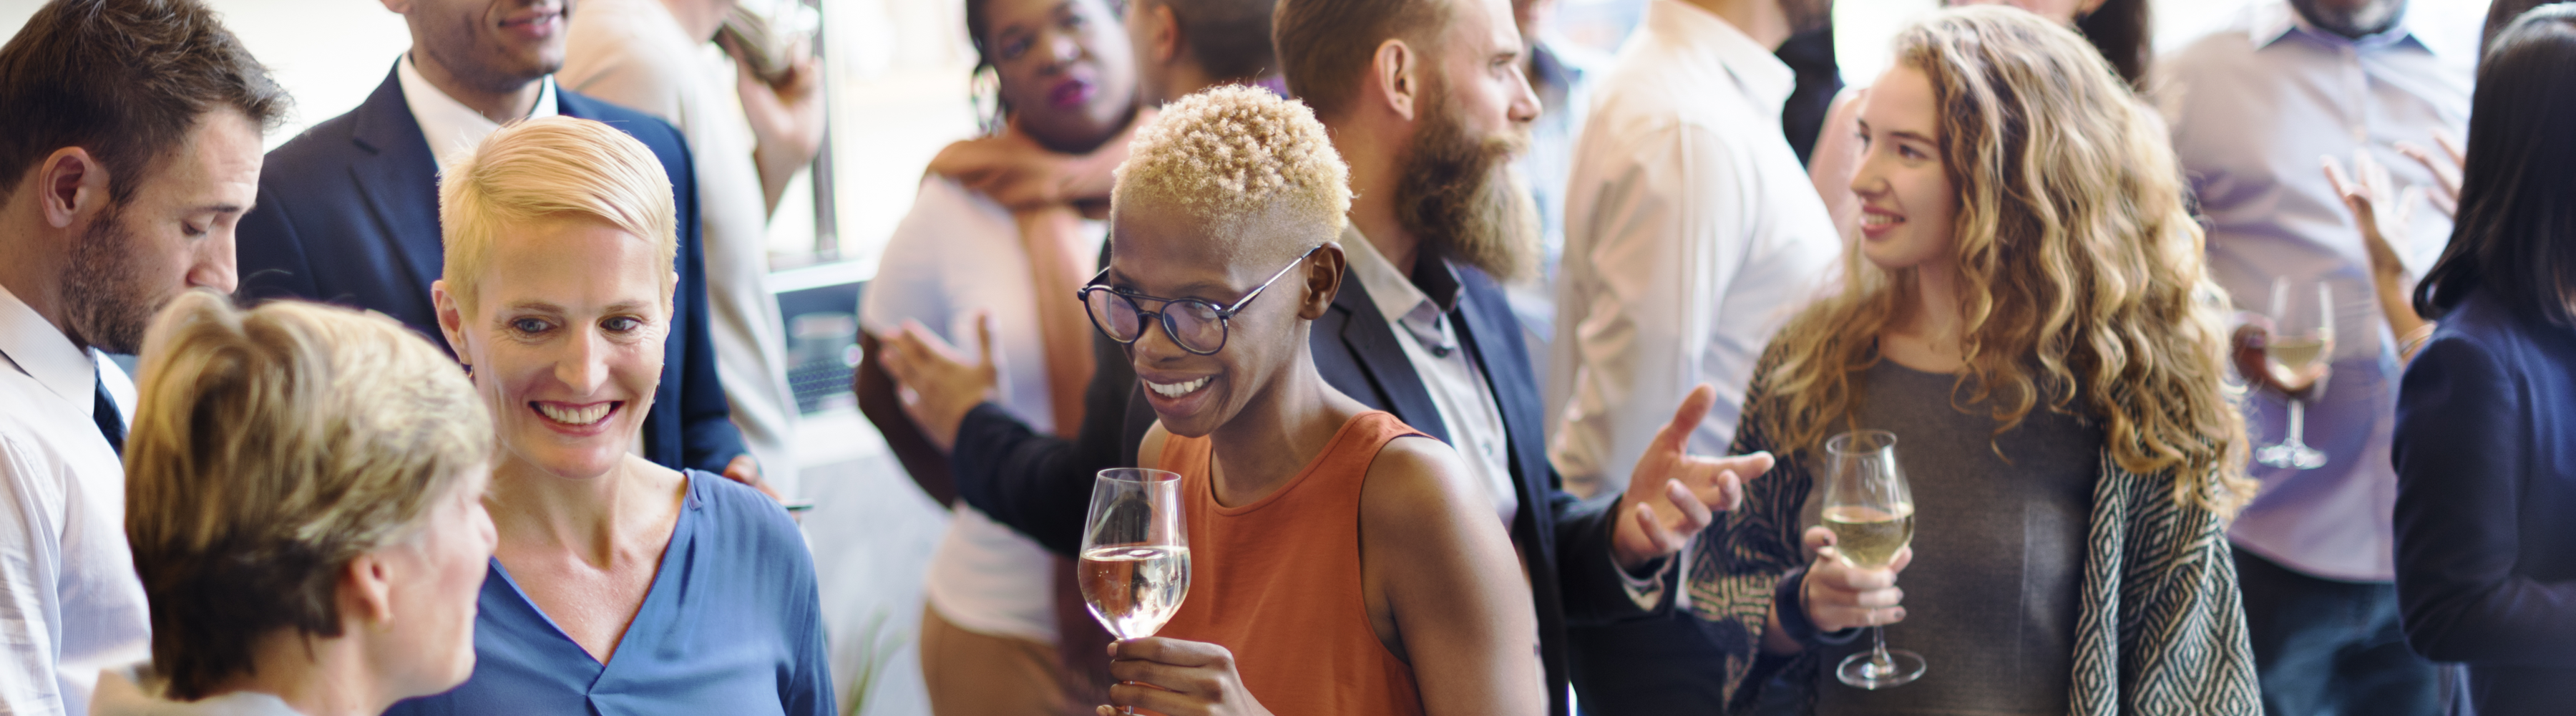 What To Bring To A Networking Event